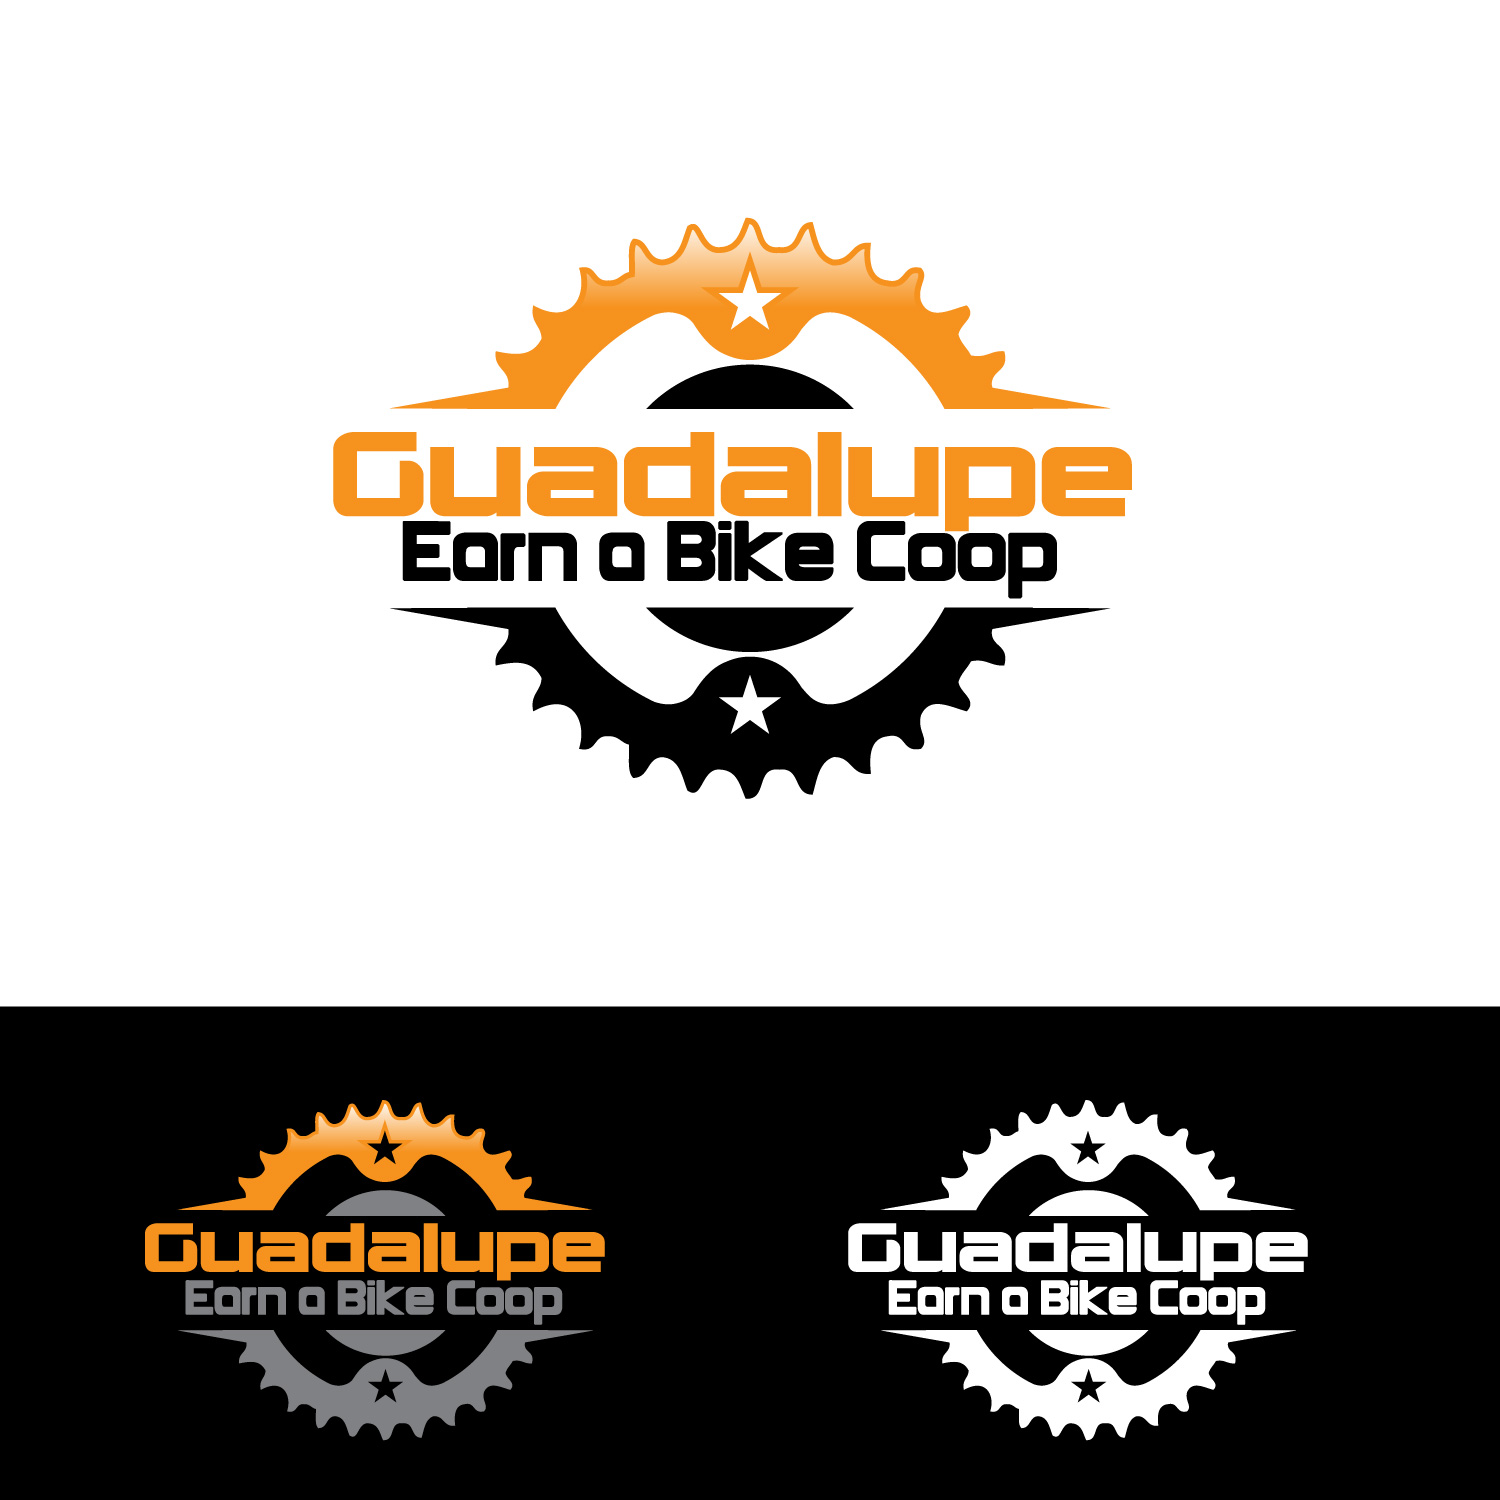 Logo Design by lagalag - Entry No. 13 in the Logo Design Contest Inspiring Logo Design for Guadalupe Earn a Bike Coop..